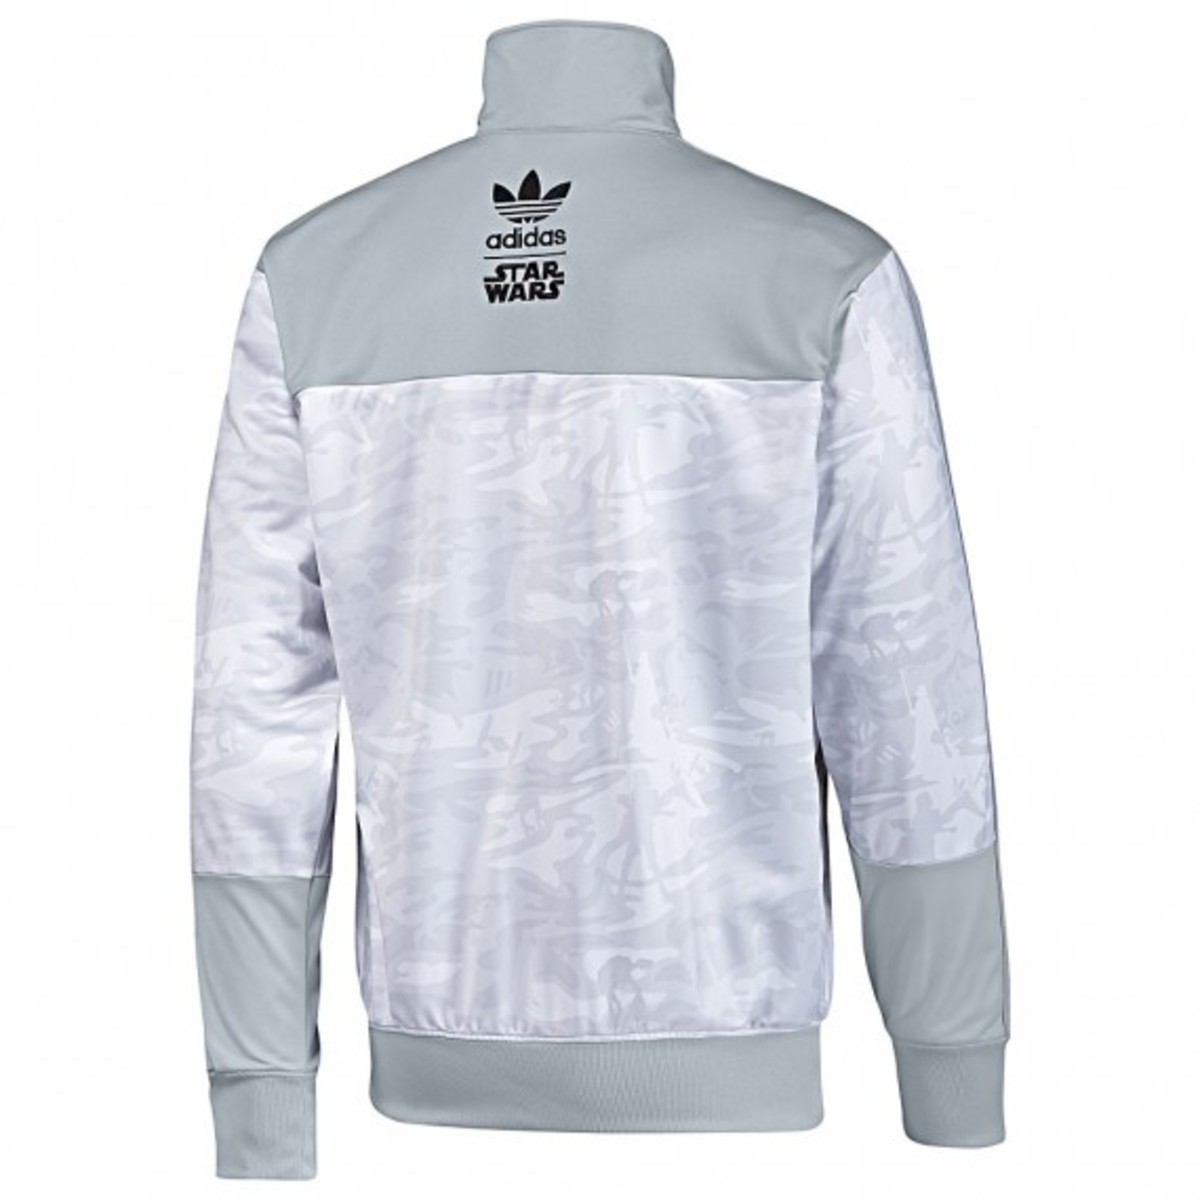 star-wars-adidas-originals-hoth-collection-apparel-available-now-06